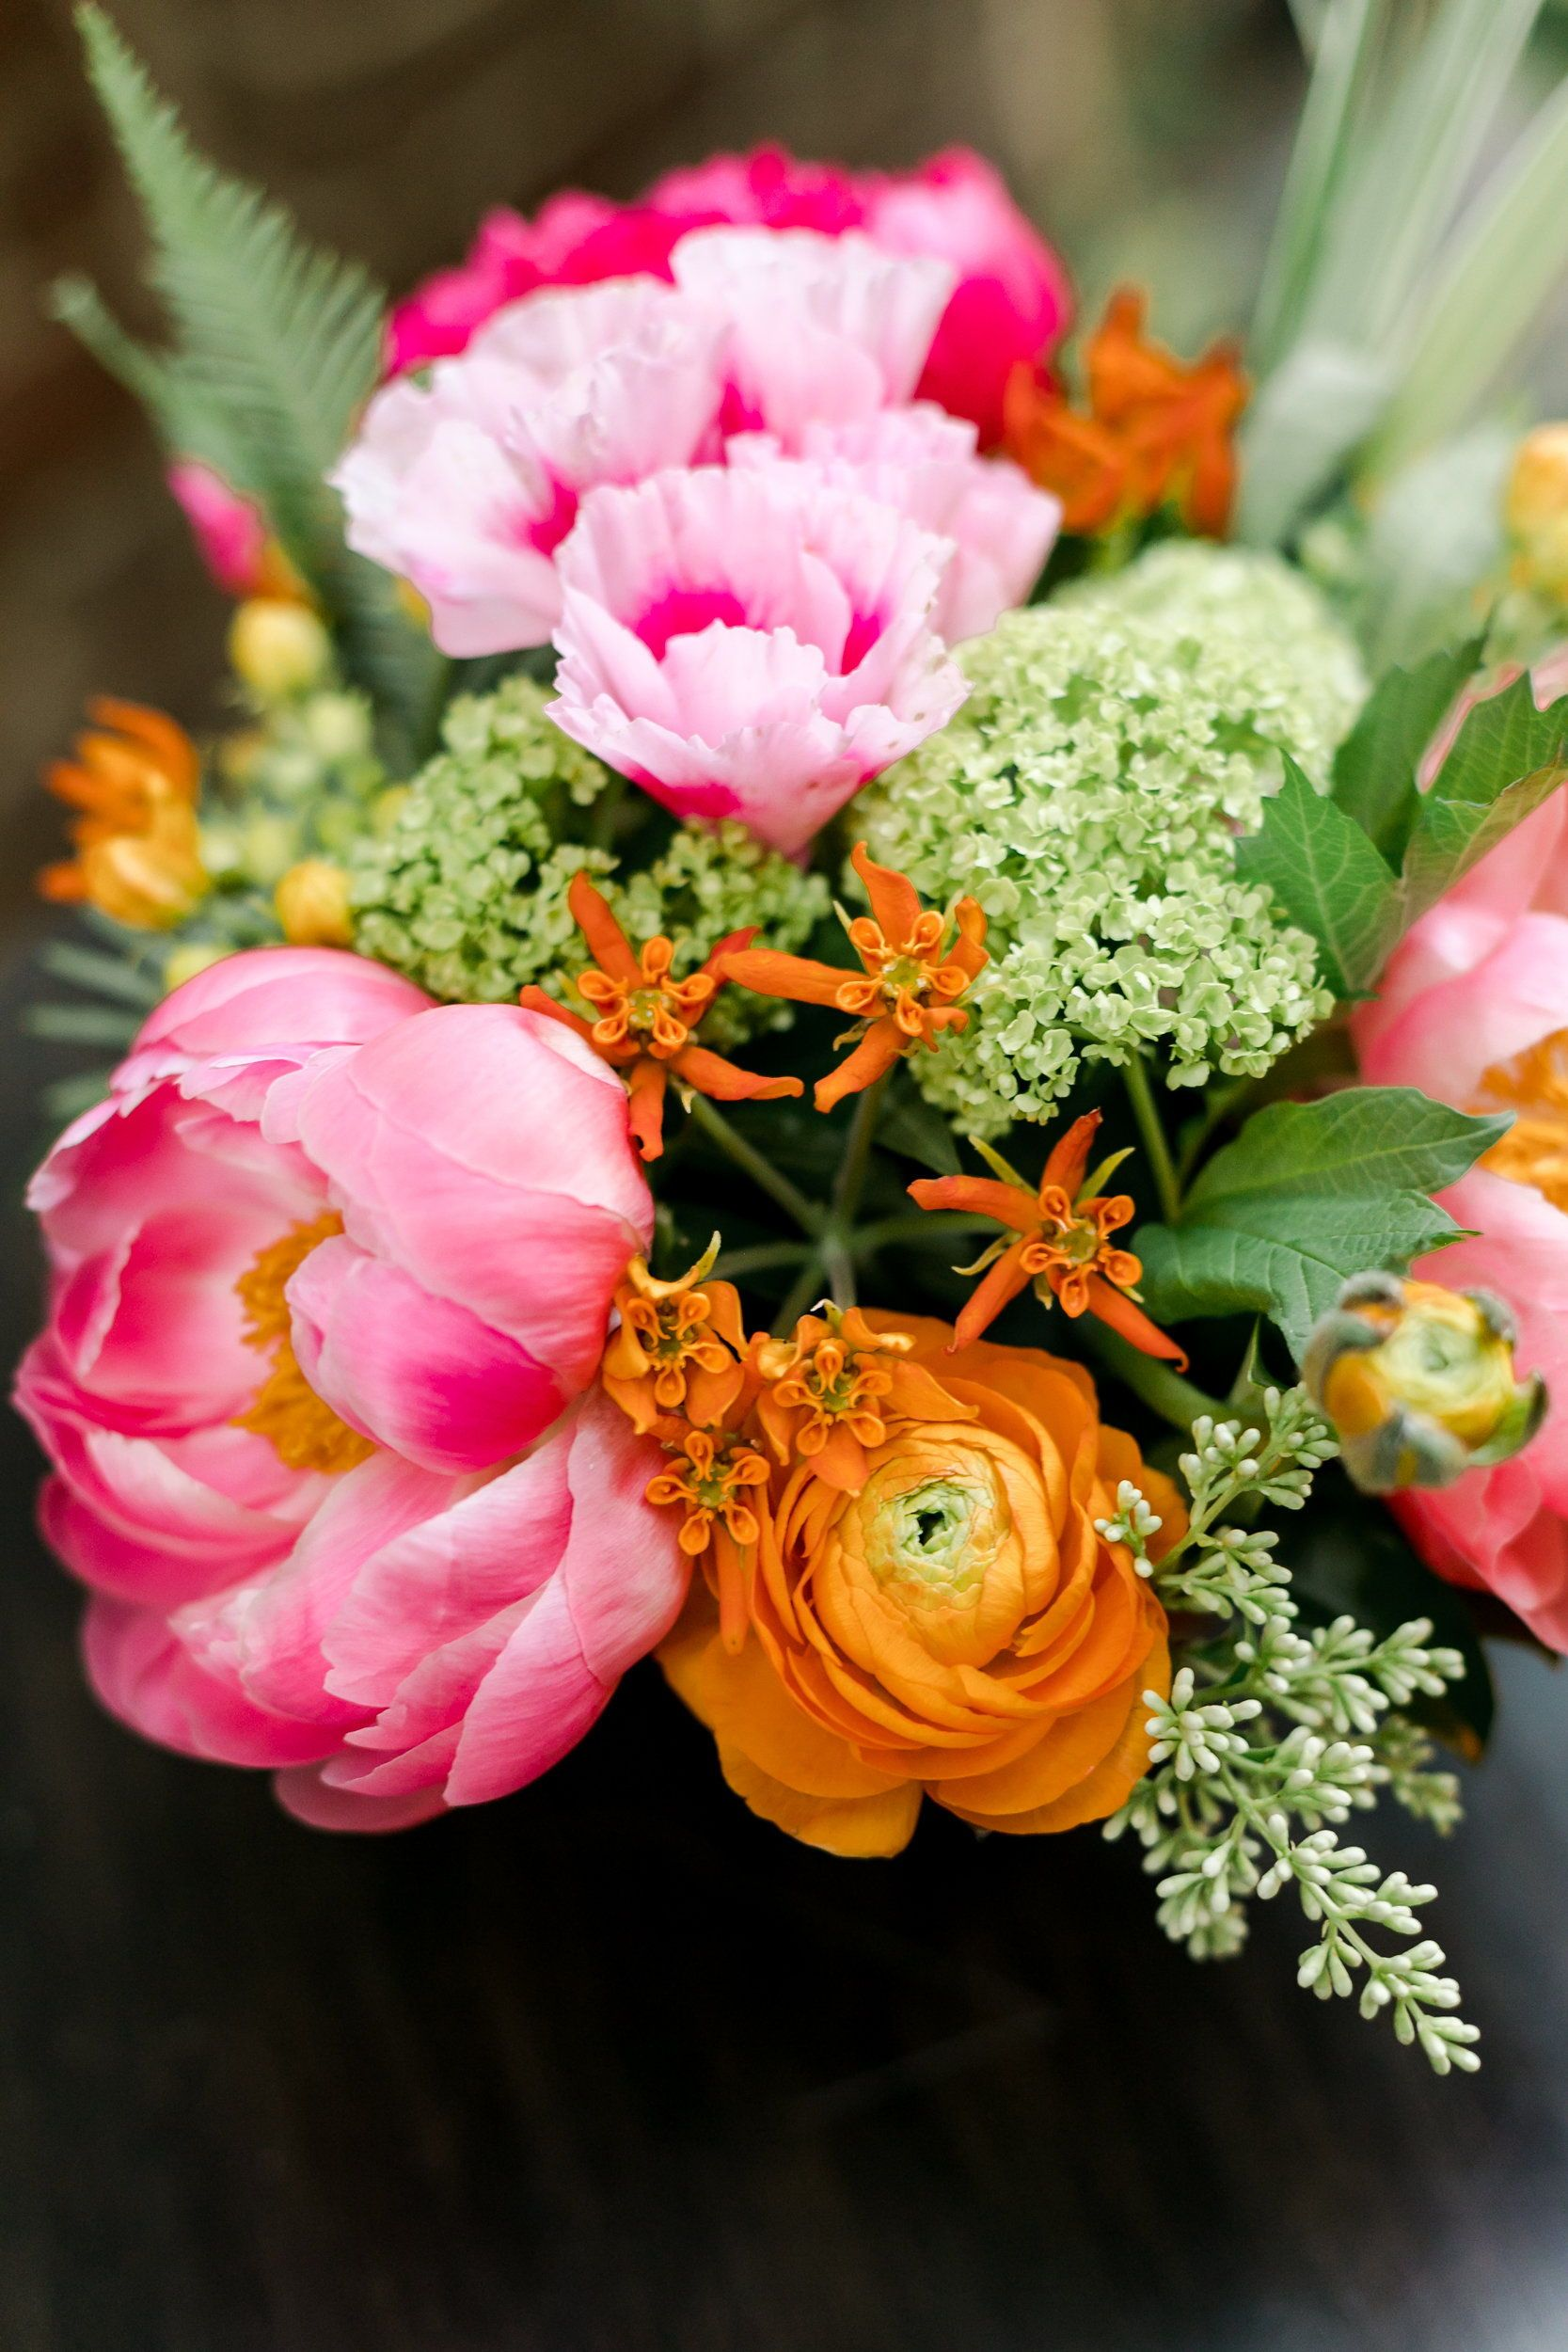 Colorful Summer Bouquet Peonies Ranunculus Godetia Viburnum Asclepias Beatrix Colorful Flowers Arrangements Flowers Bouquet Gift Flowers